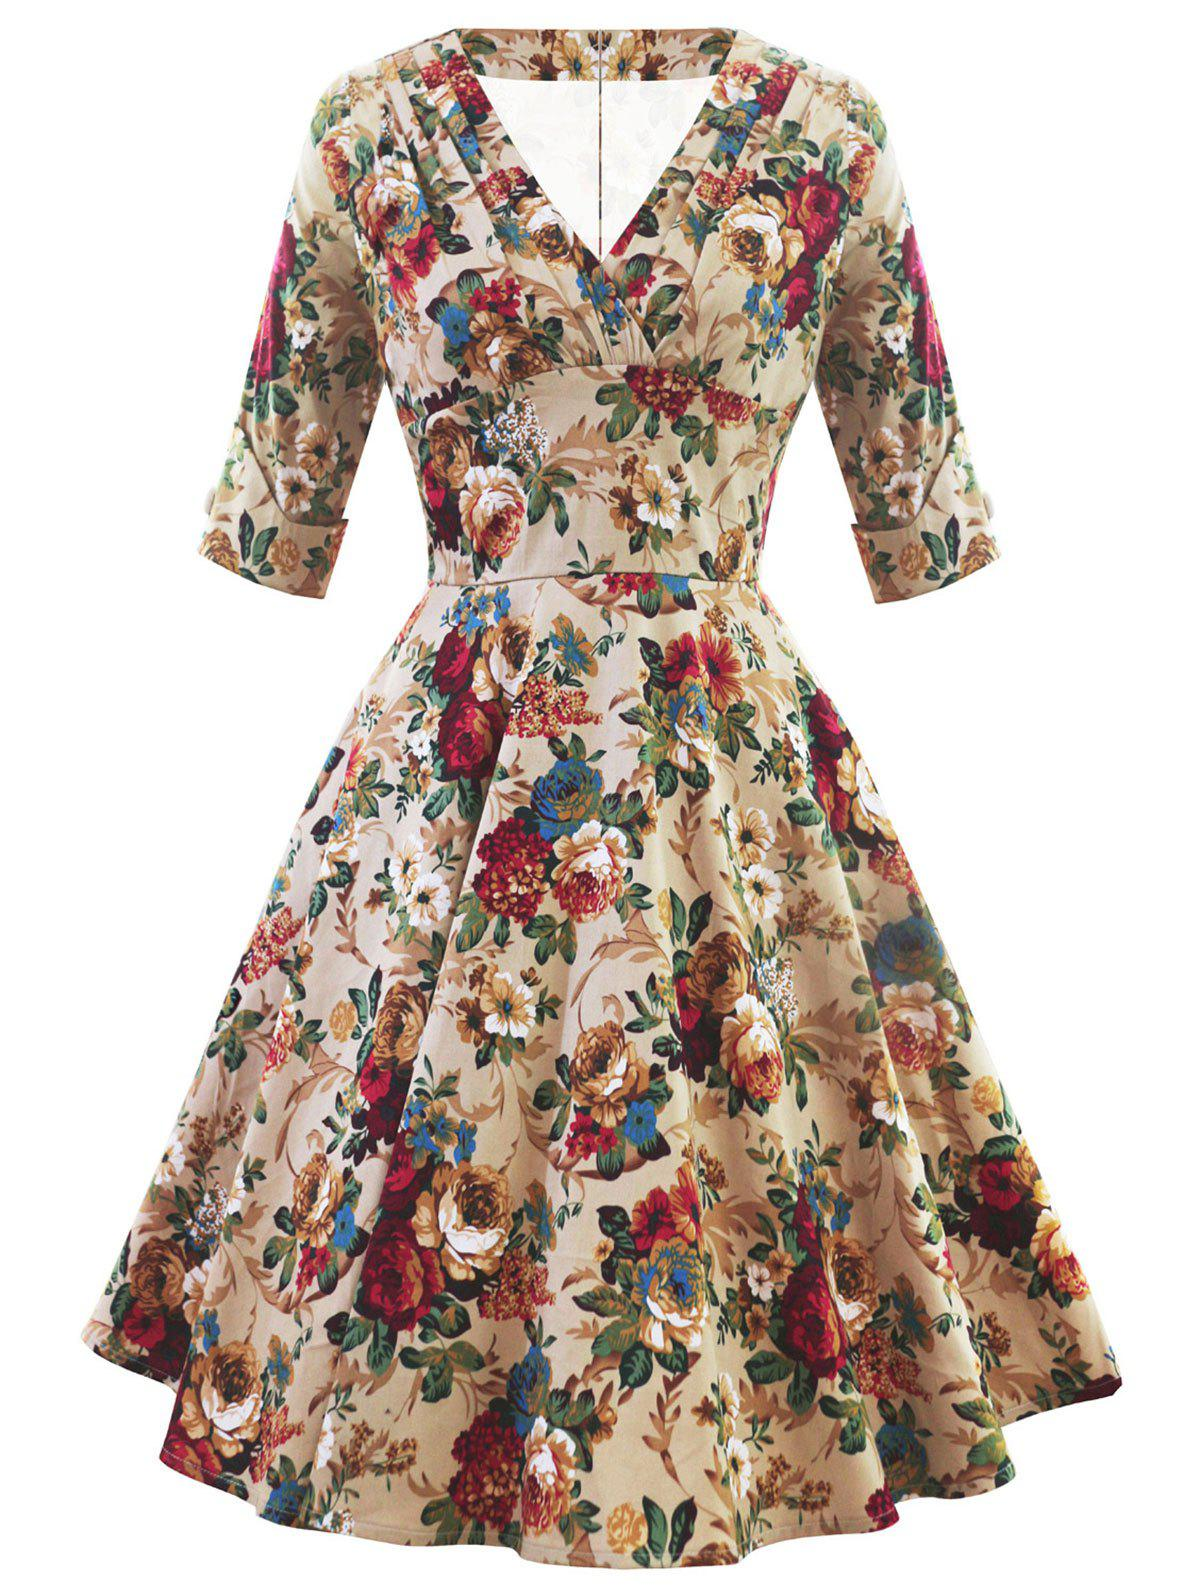 Affordable Retro V Neck Floral High Waist Dress